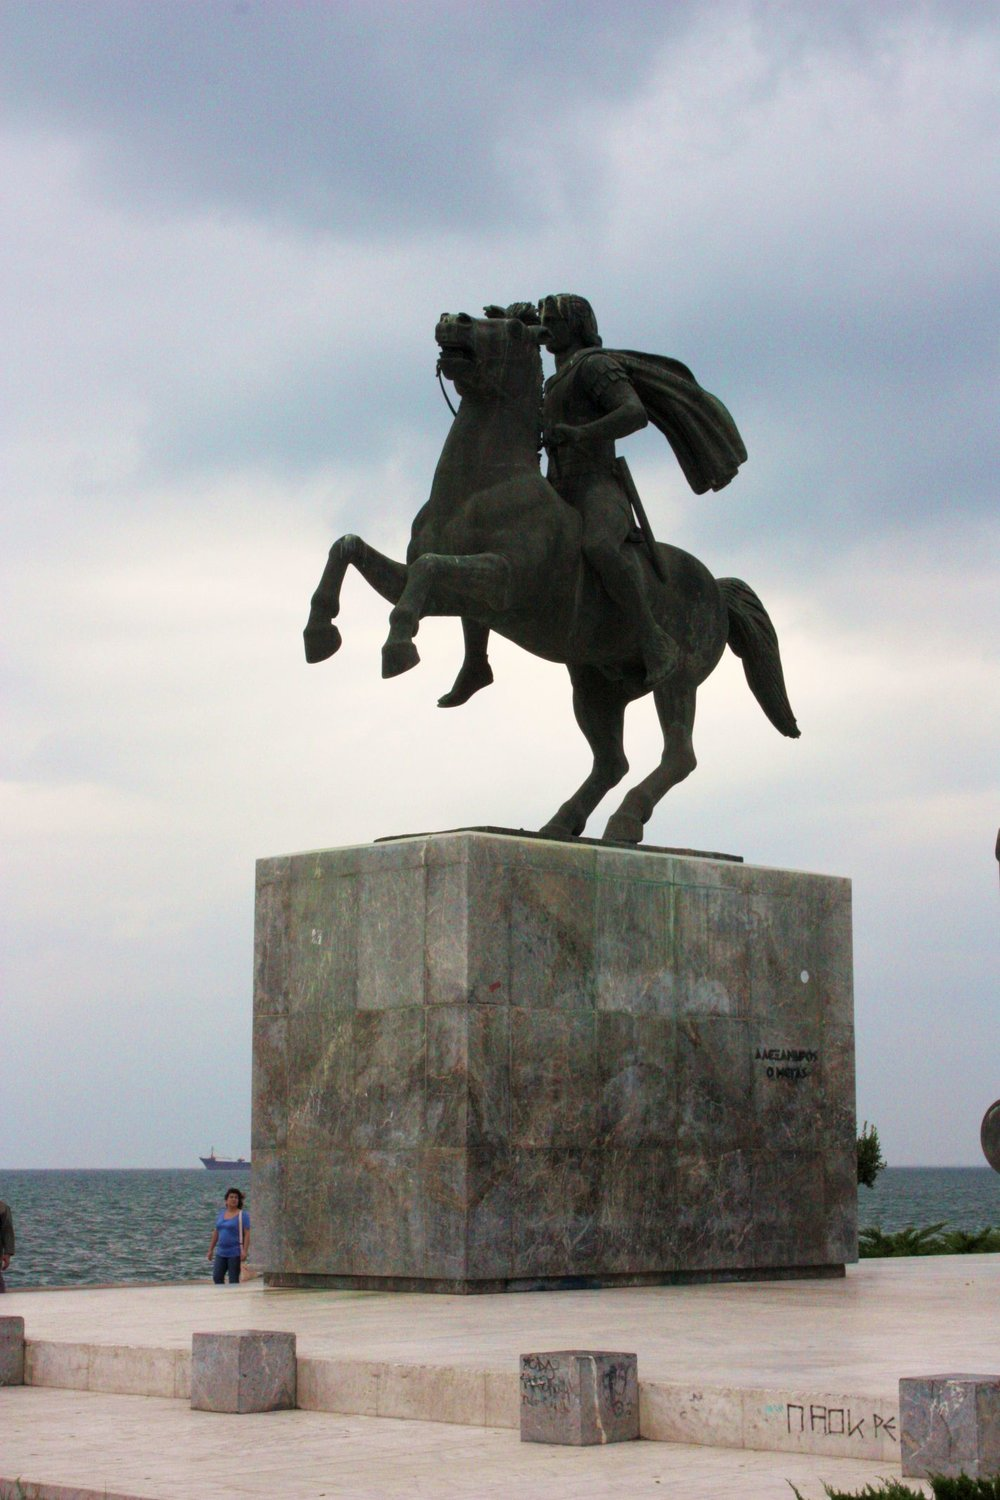 Alexander the Great, aboard his trusty steed Bucephalus in Thessaloniki, Greece, remains a protean metaphor for today's leaders, including President Donald J. Trump.